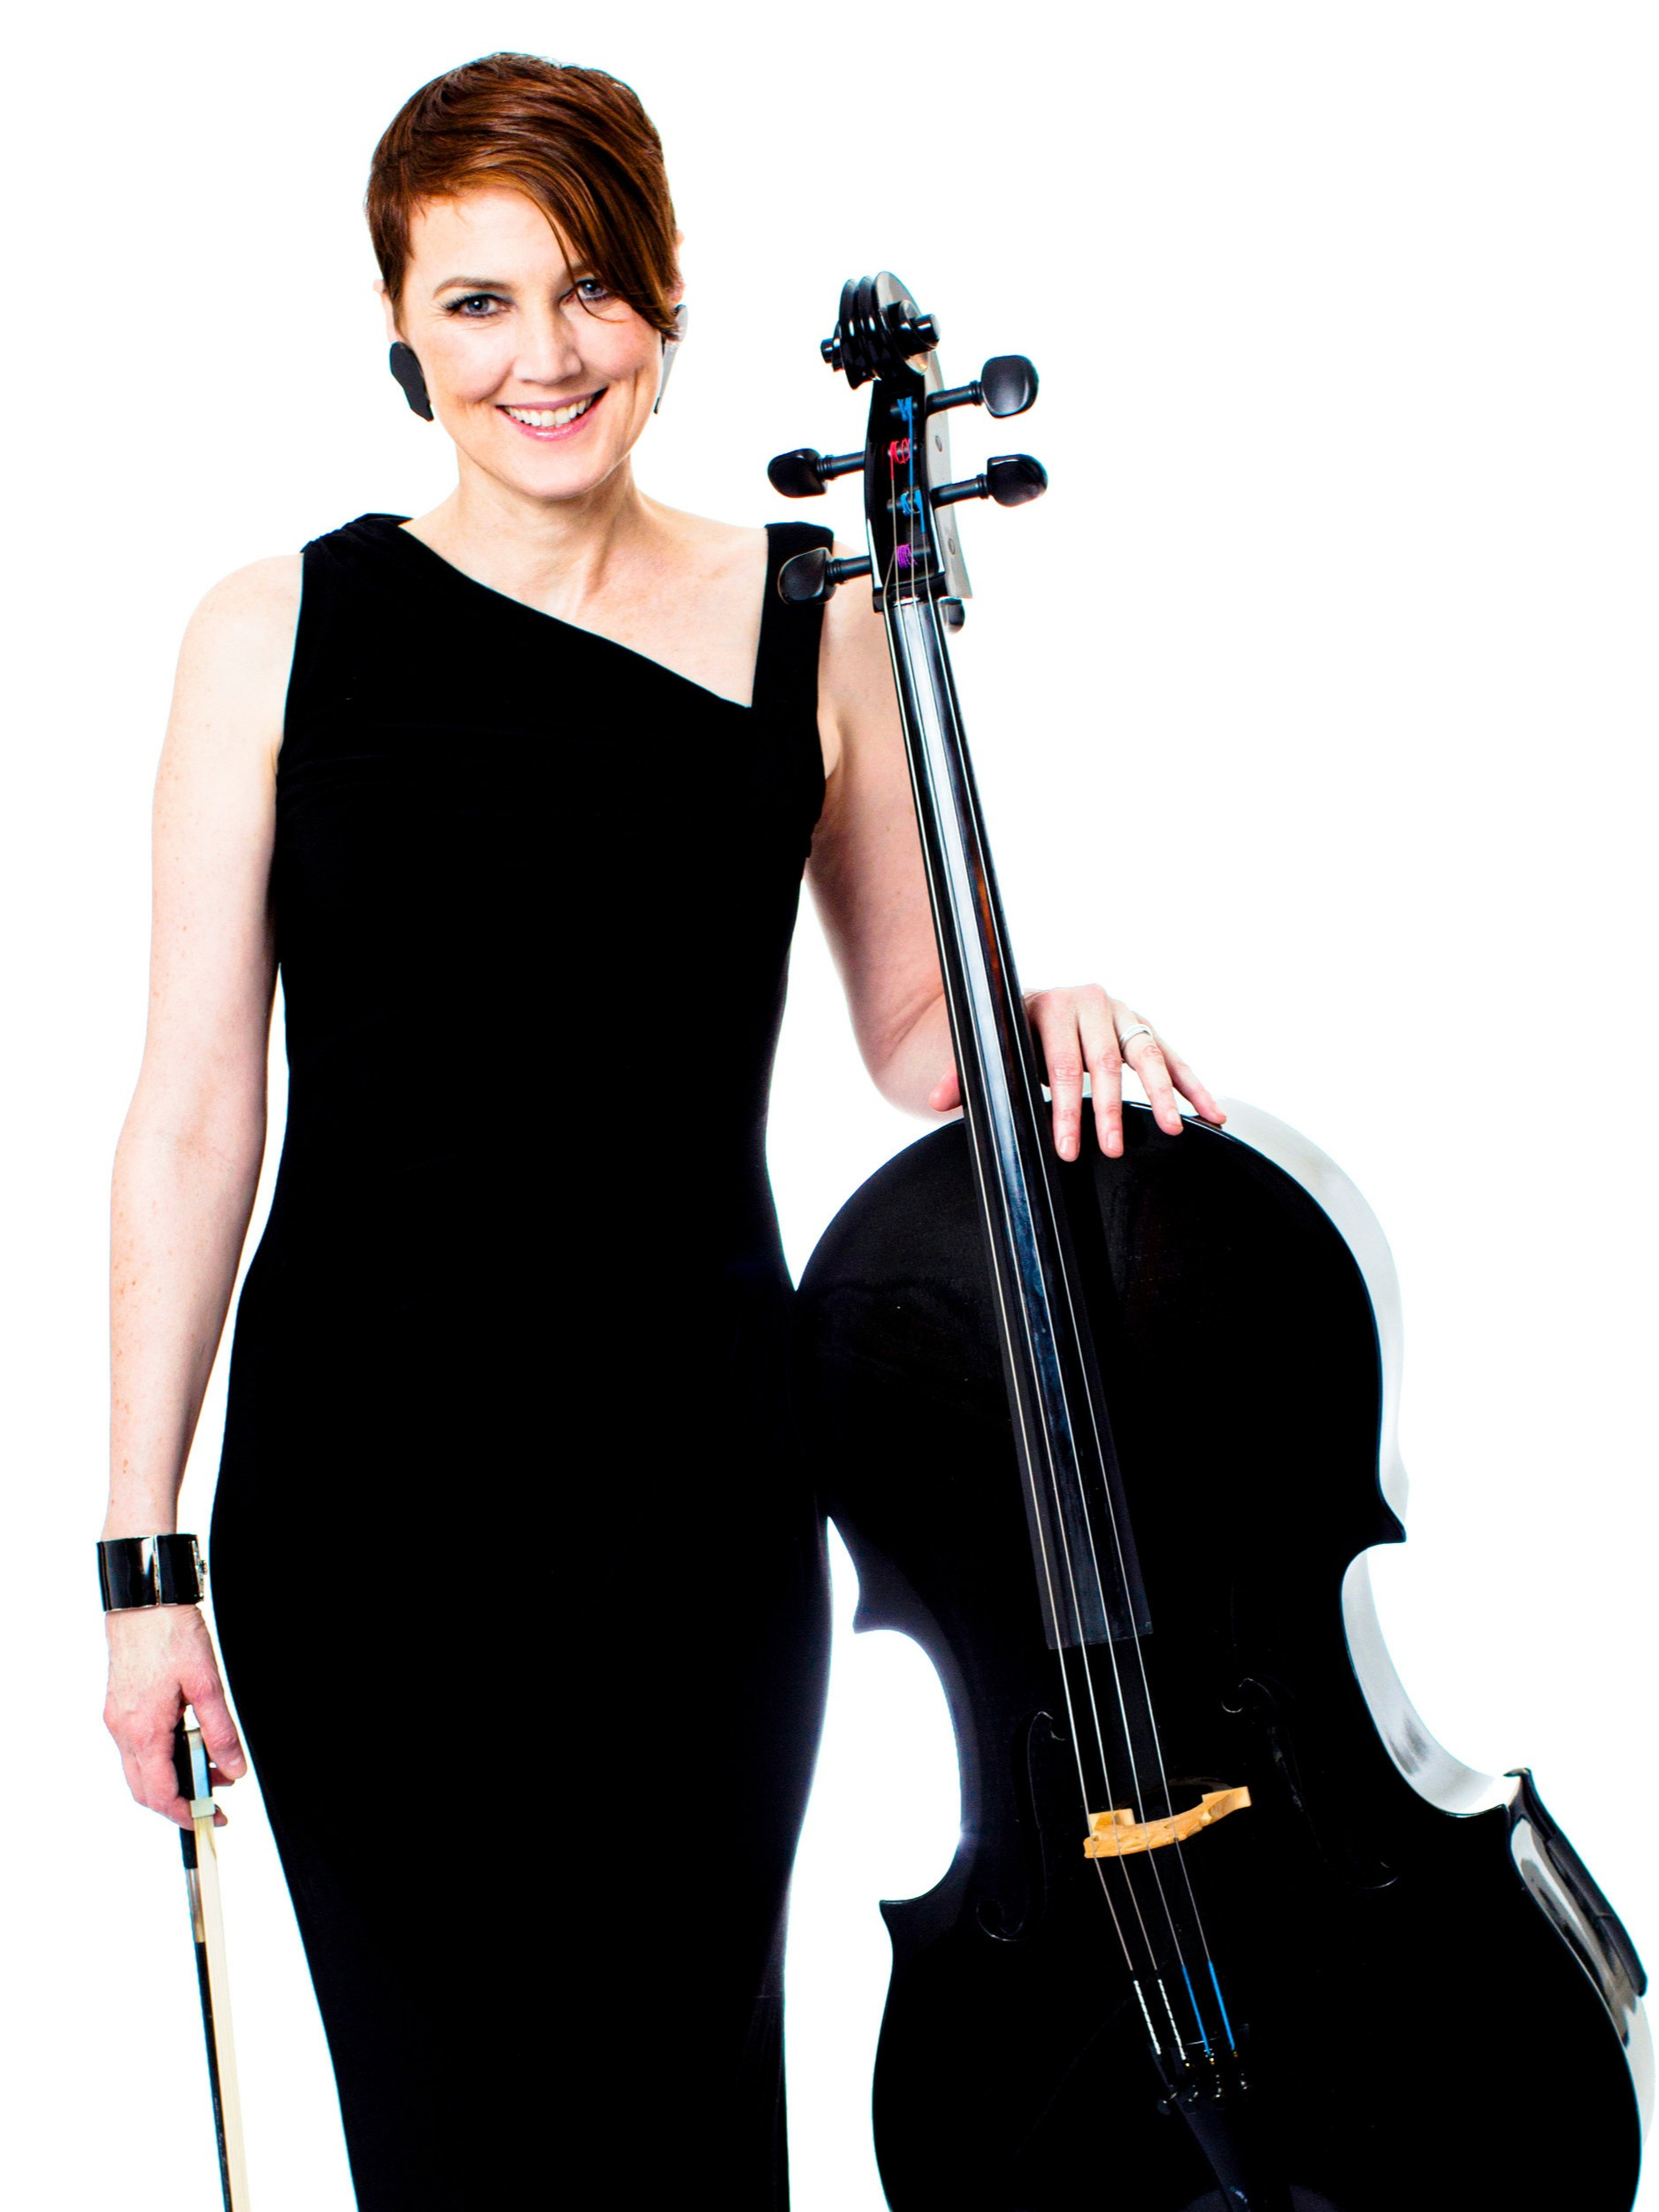 Stephanie Winters - Suite No. 5 in C minorWinters & Bengtsson: Cello, DanceDecades of touring led cellist Stephanie Winters to become passionate about leveraging the transformational power of music for positive change in the workplace. She now works in the realm of leadership, where she gives Listen Differently® workshops and keynotes, playing Bach and using movement to inspire people to go beyond their limitations and perform at their best.Learn more at www.StephanieWinters.com.